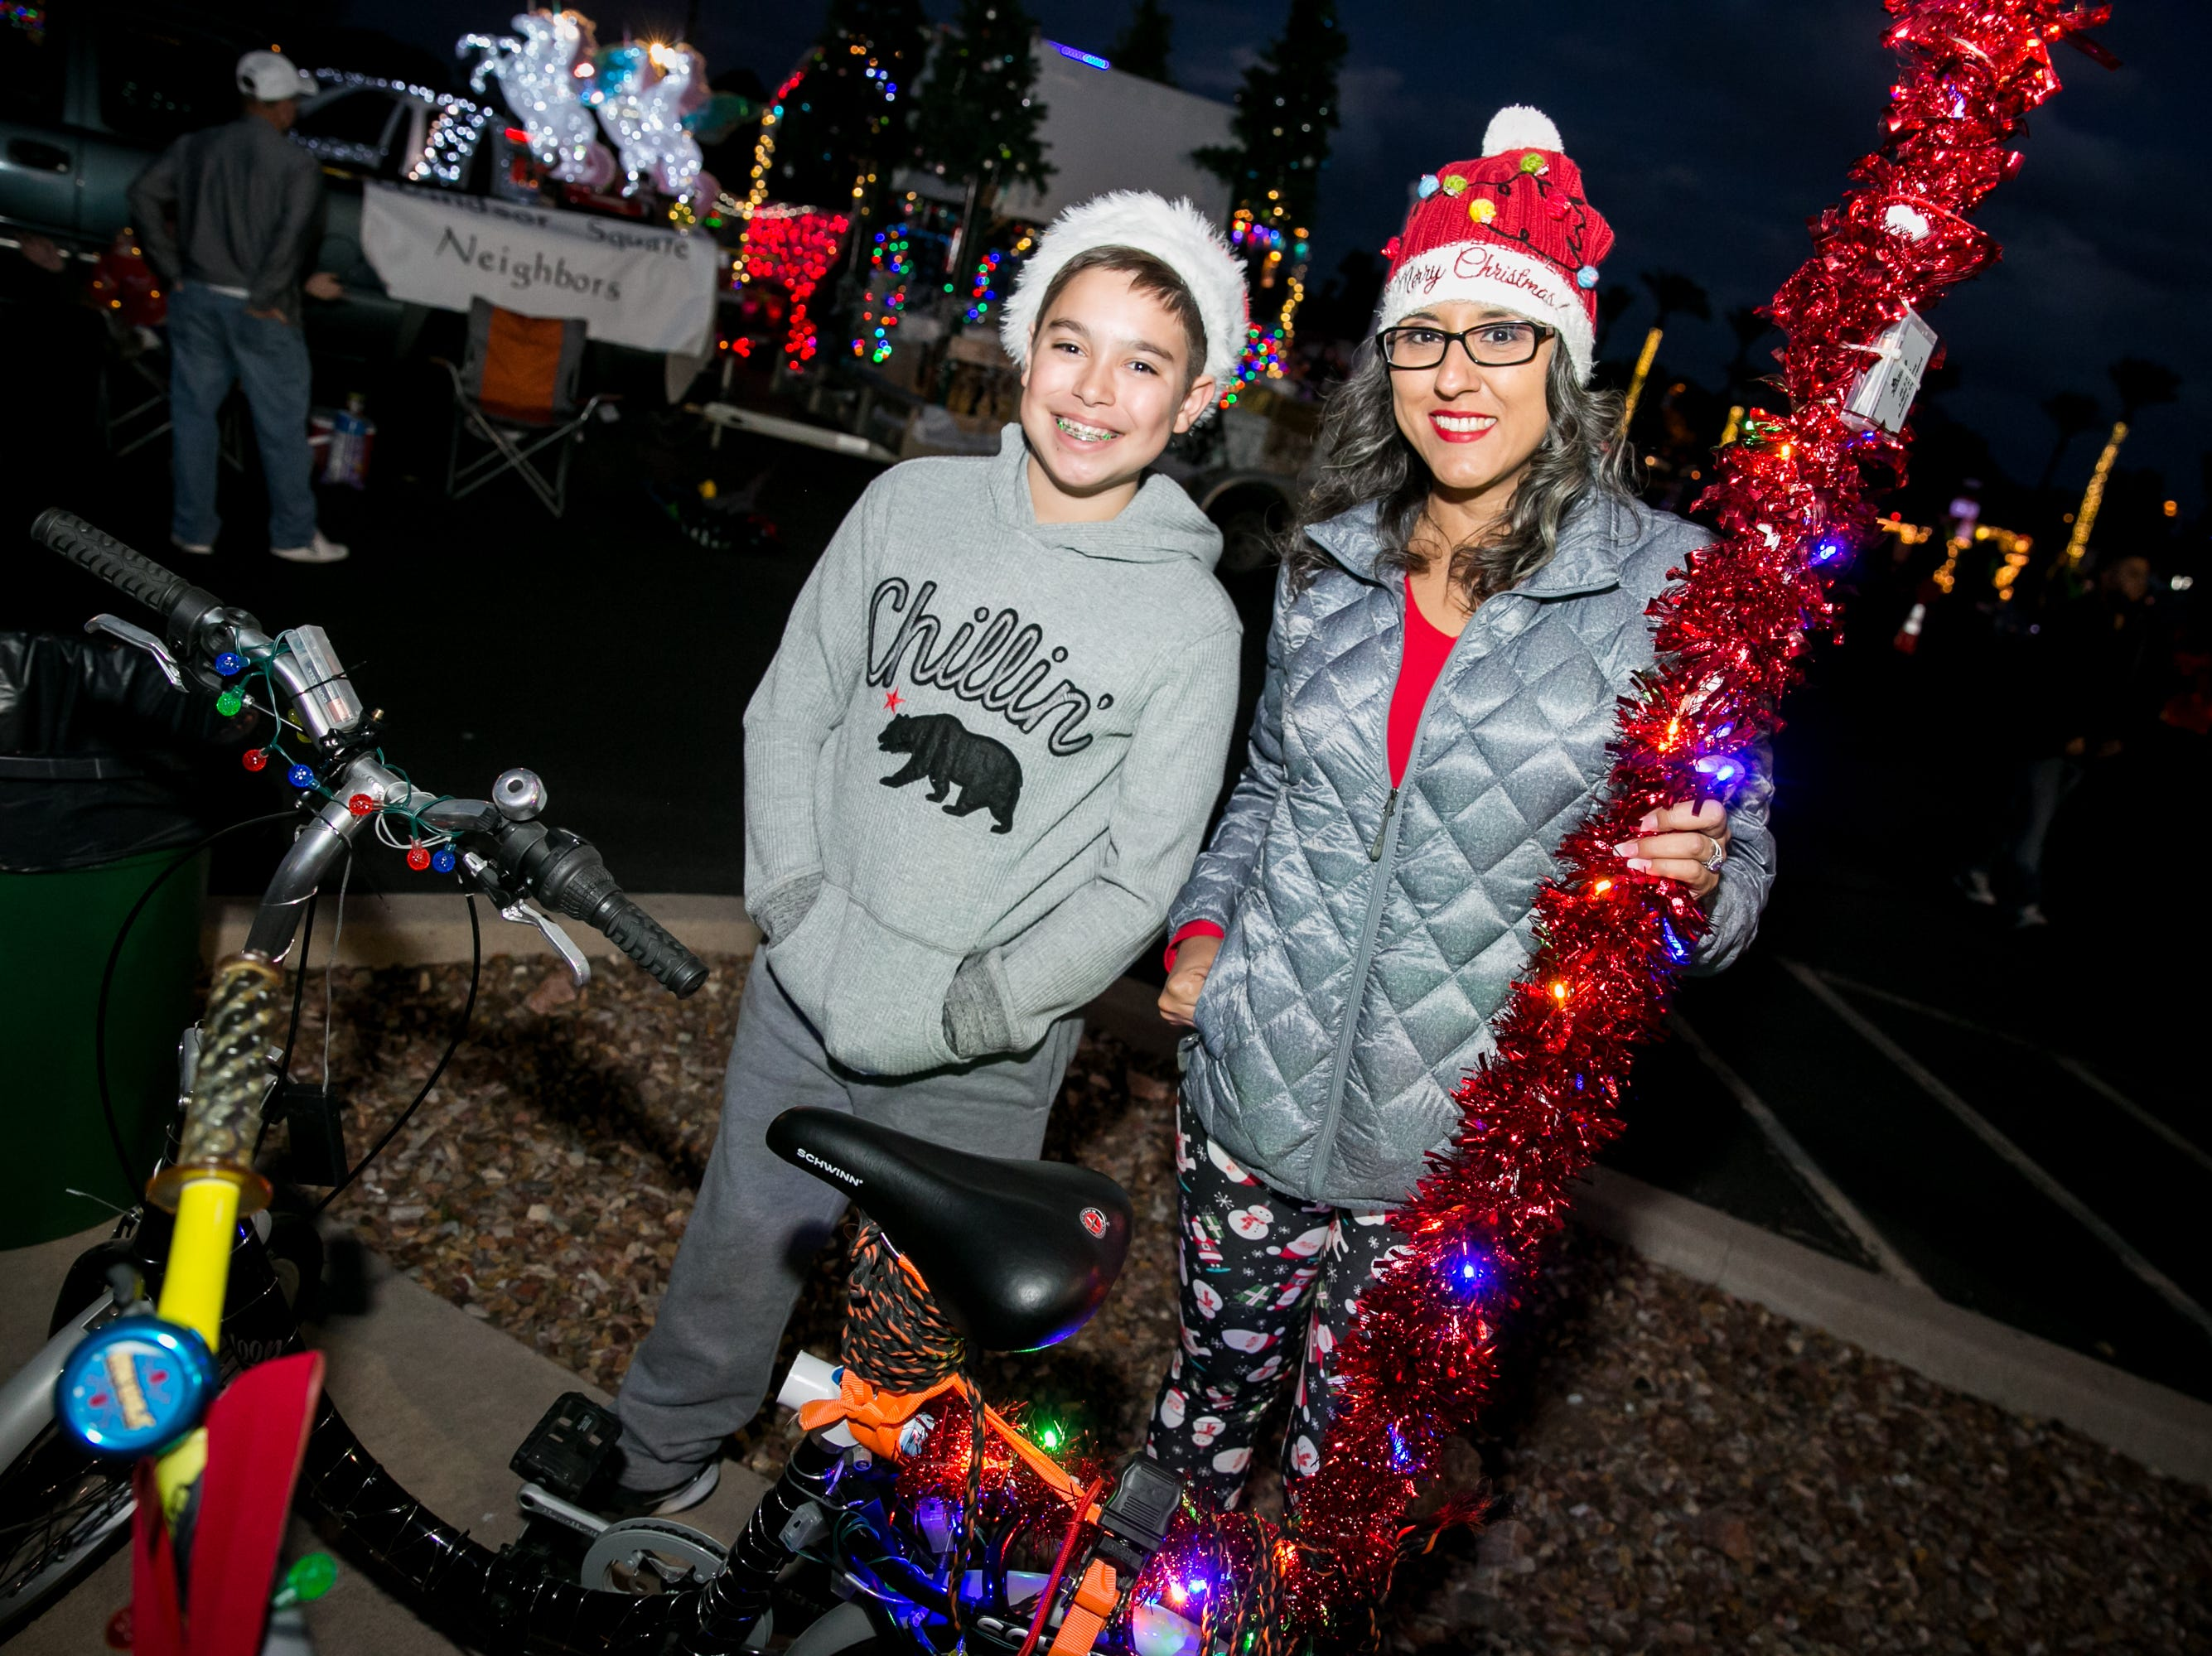 These two were chillin' during the APS Electric Light Parade in Central Phoenix on Saturday, December 1, 2018.